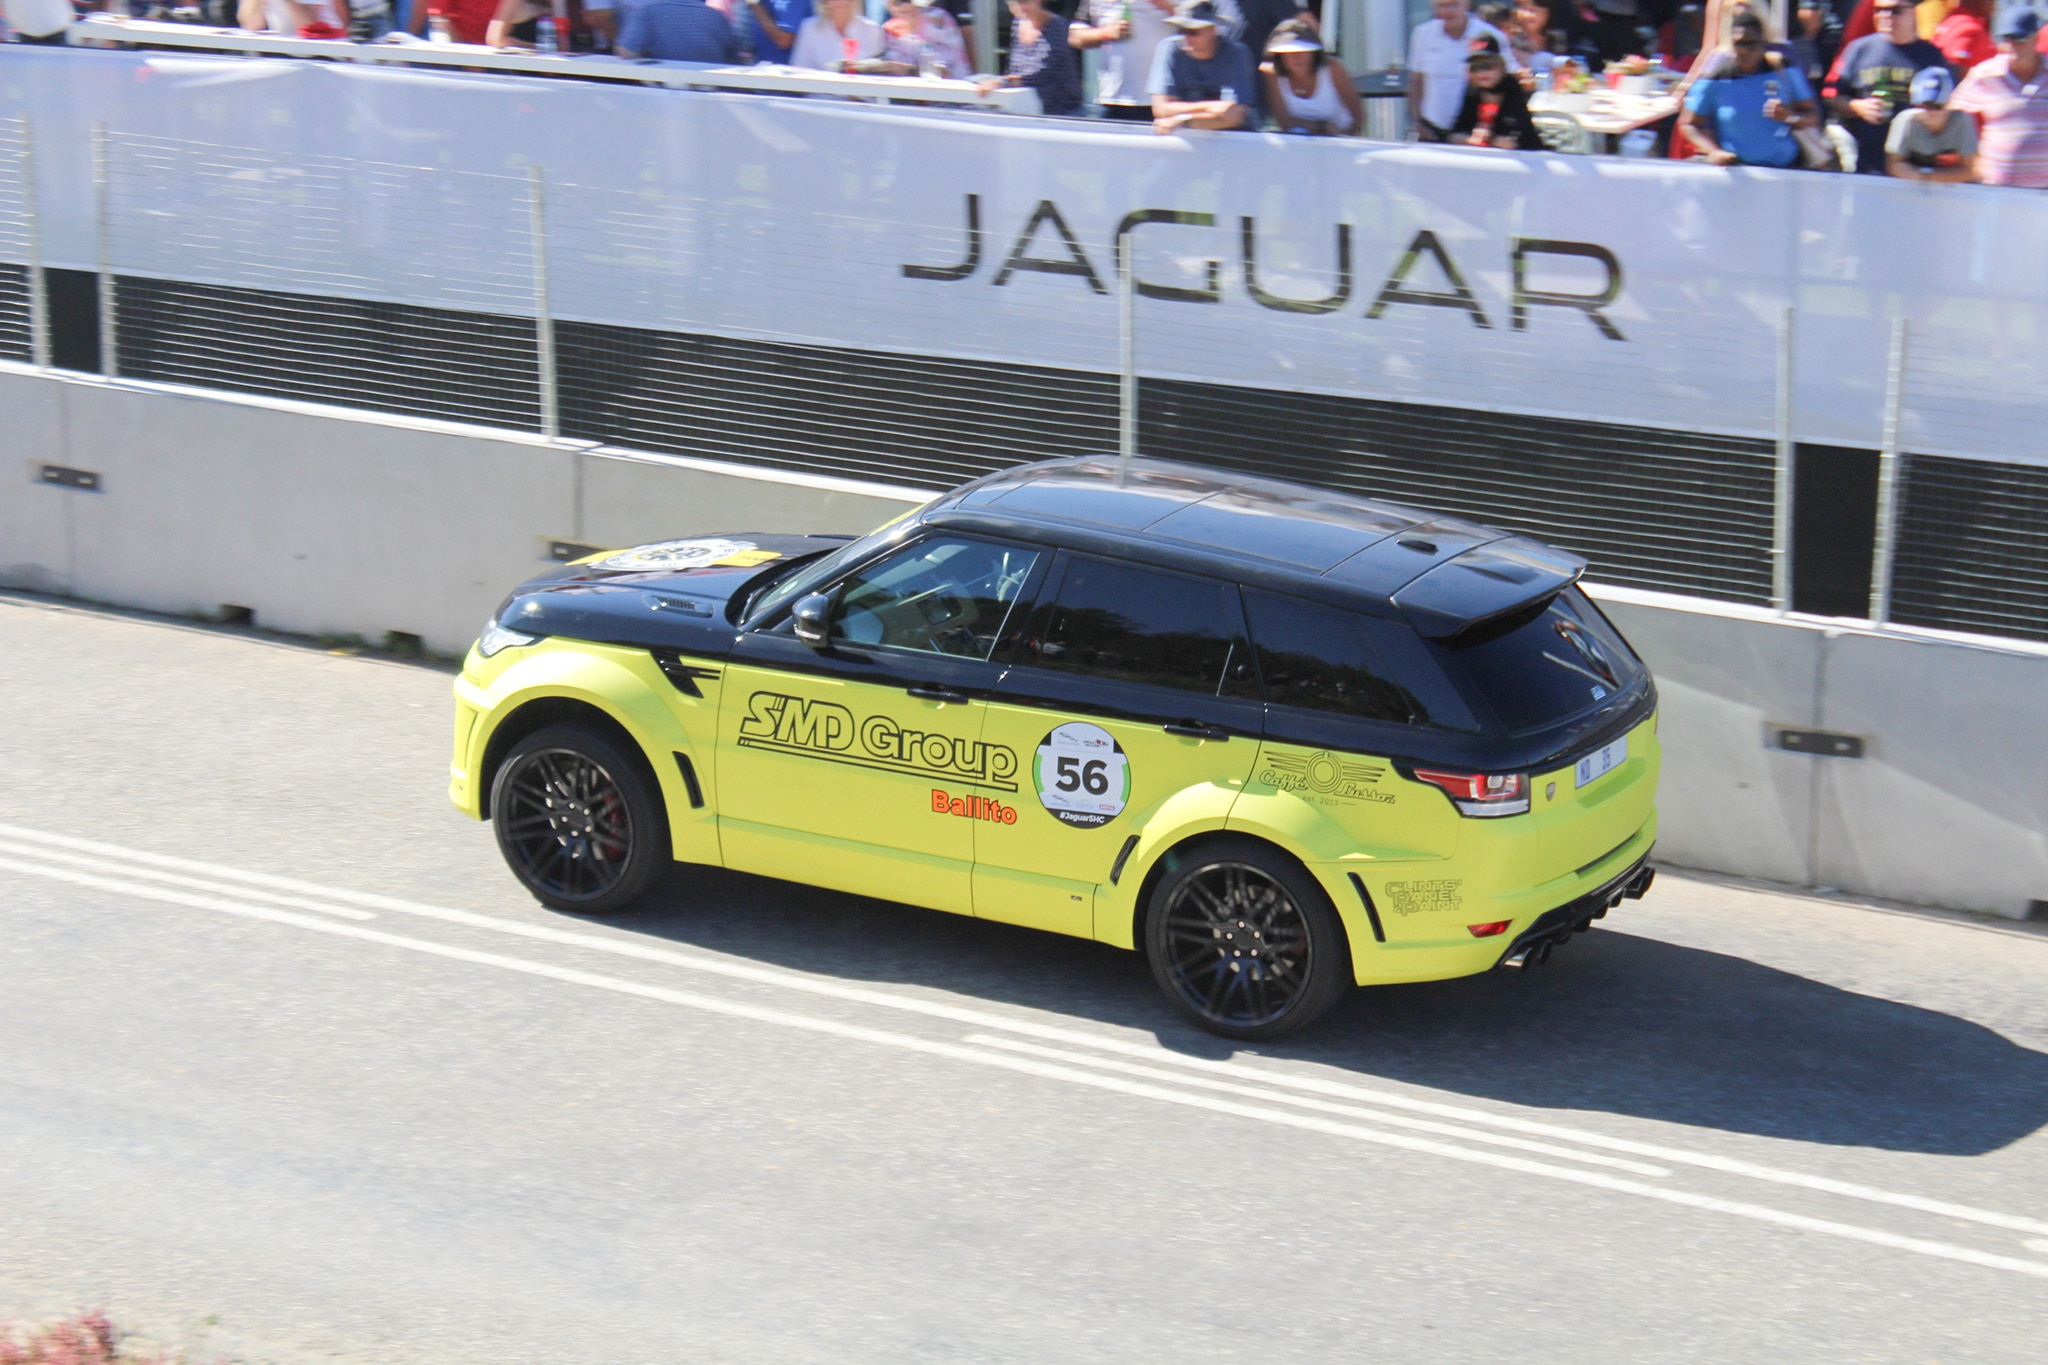 Cars for Sale by Smd Awesome Nine Cool Cars From the 2018 Jaguar Simola Hillclimb King Of the